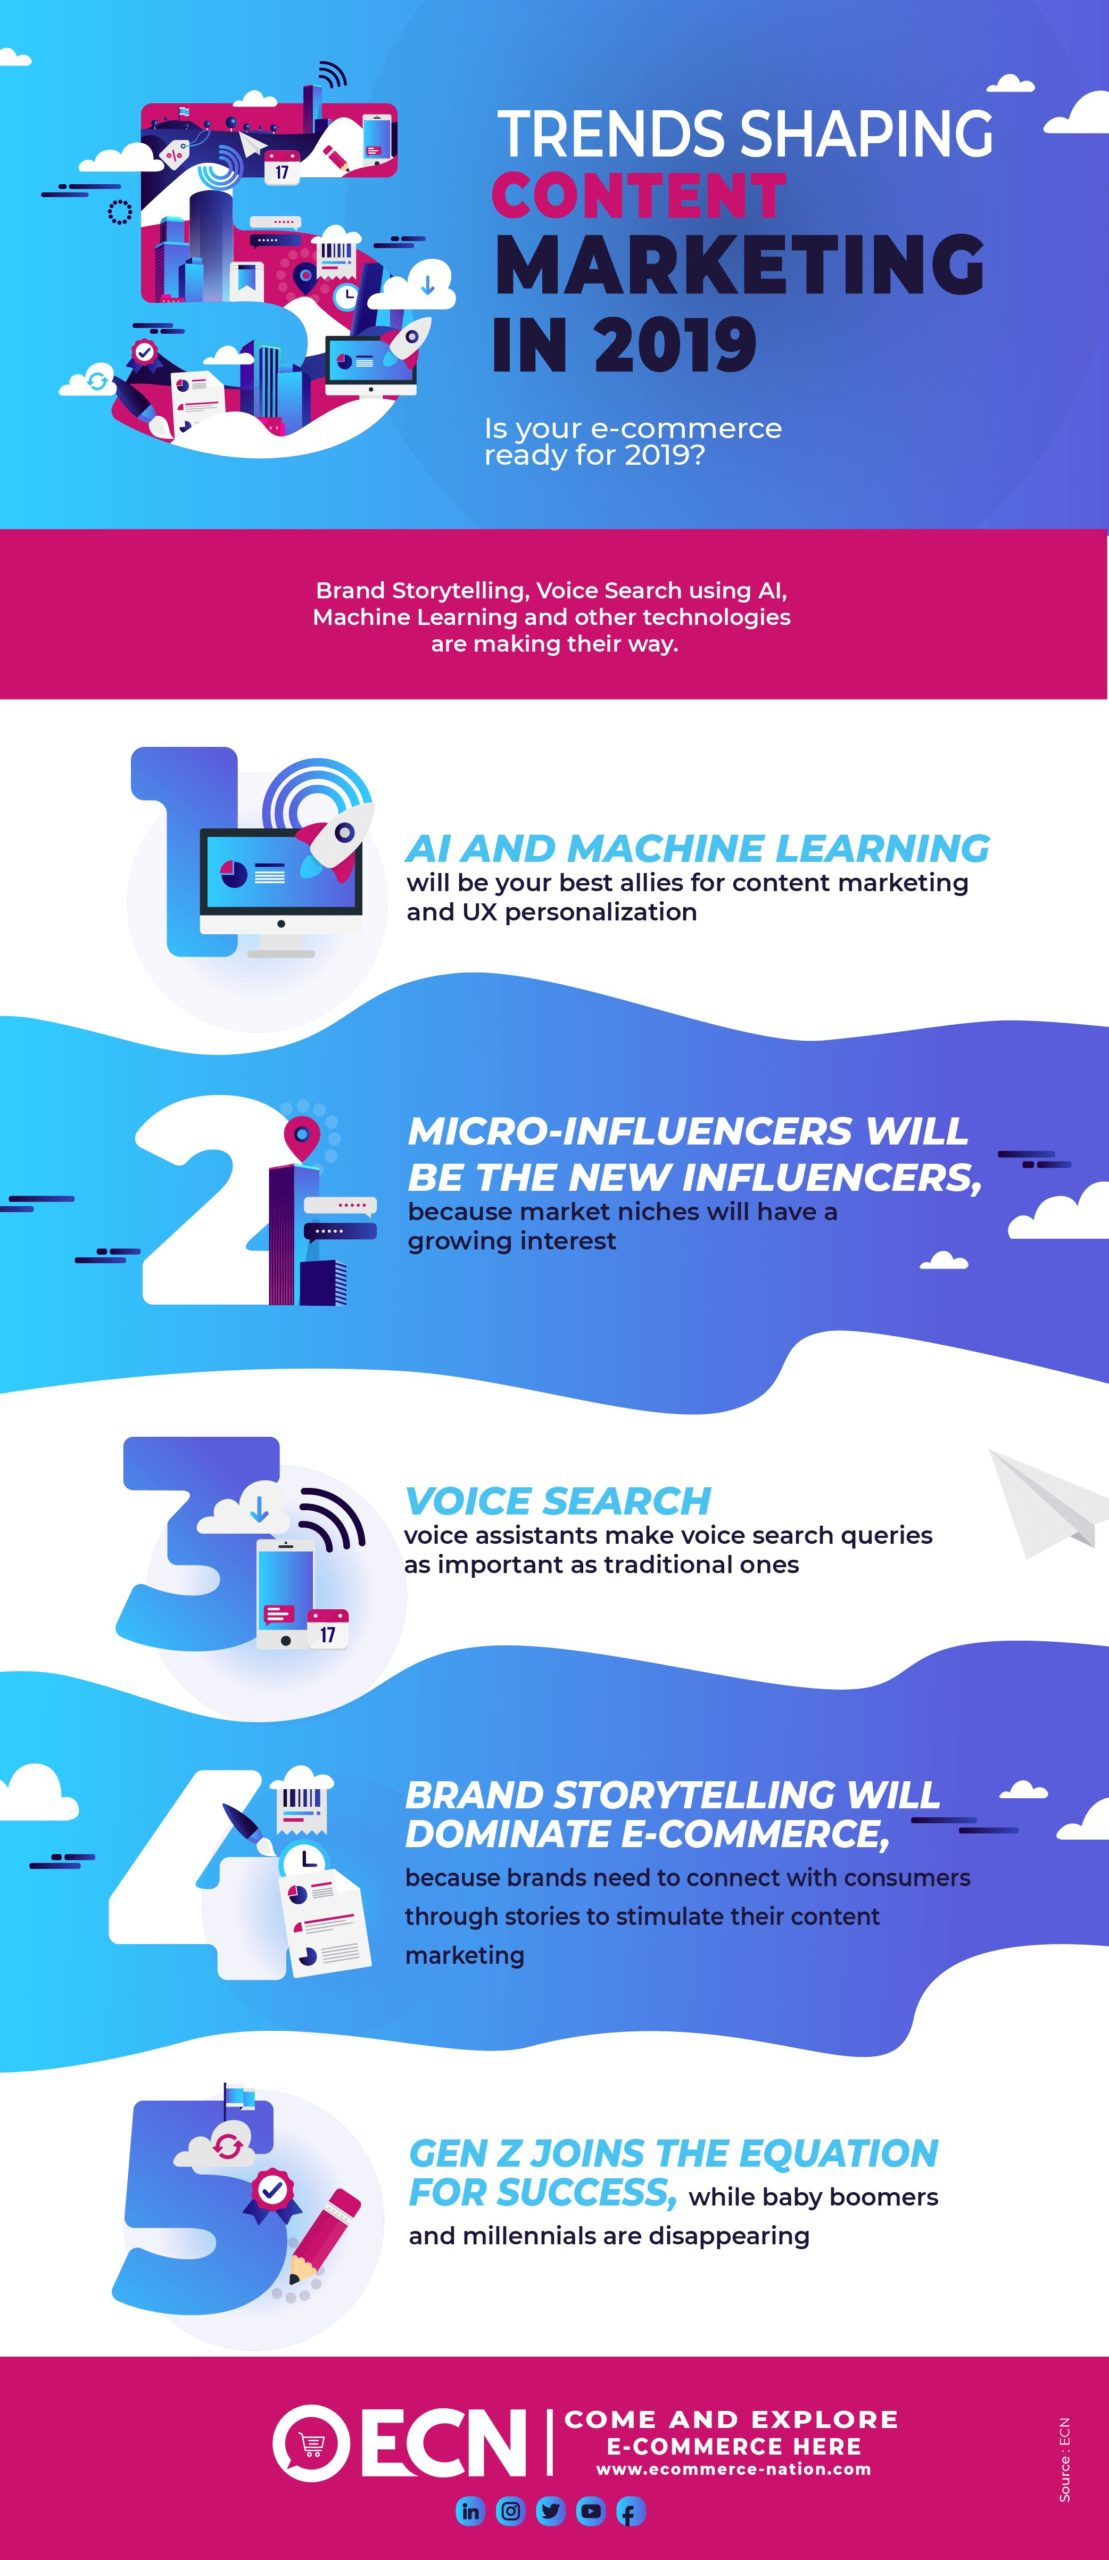 5 TRENDS SHAPING CONTENT MARKETING IN 2019